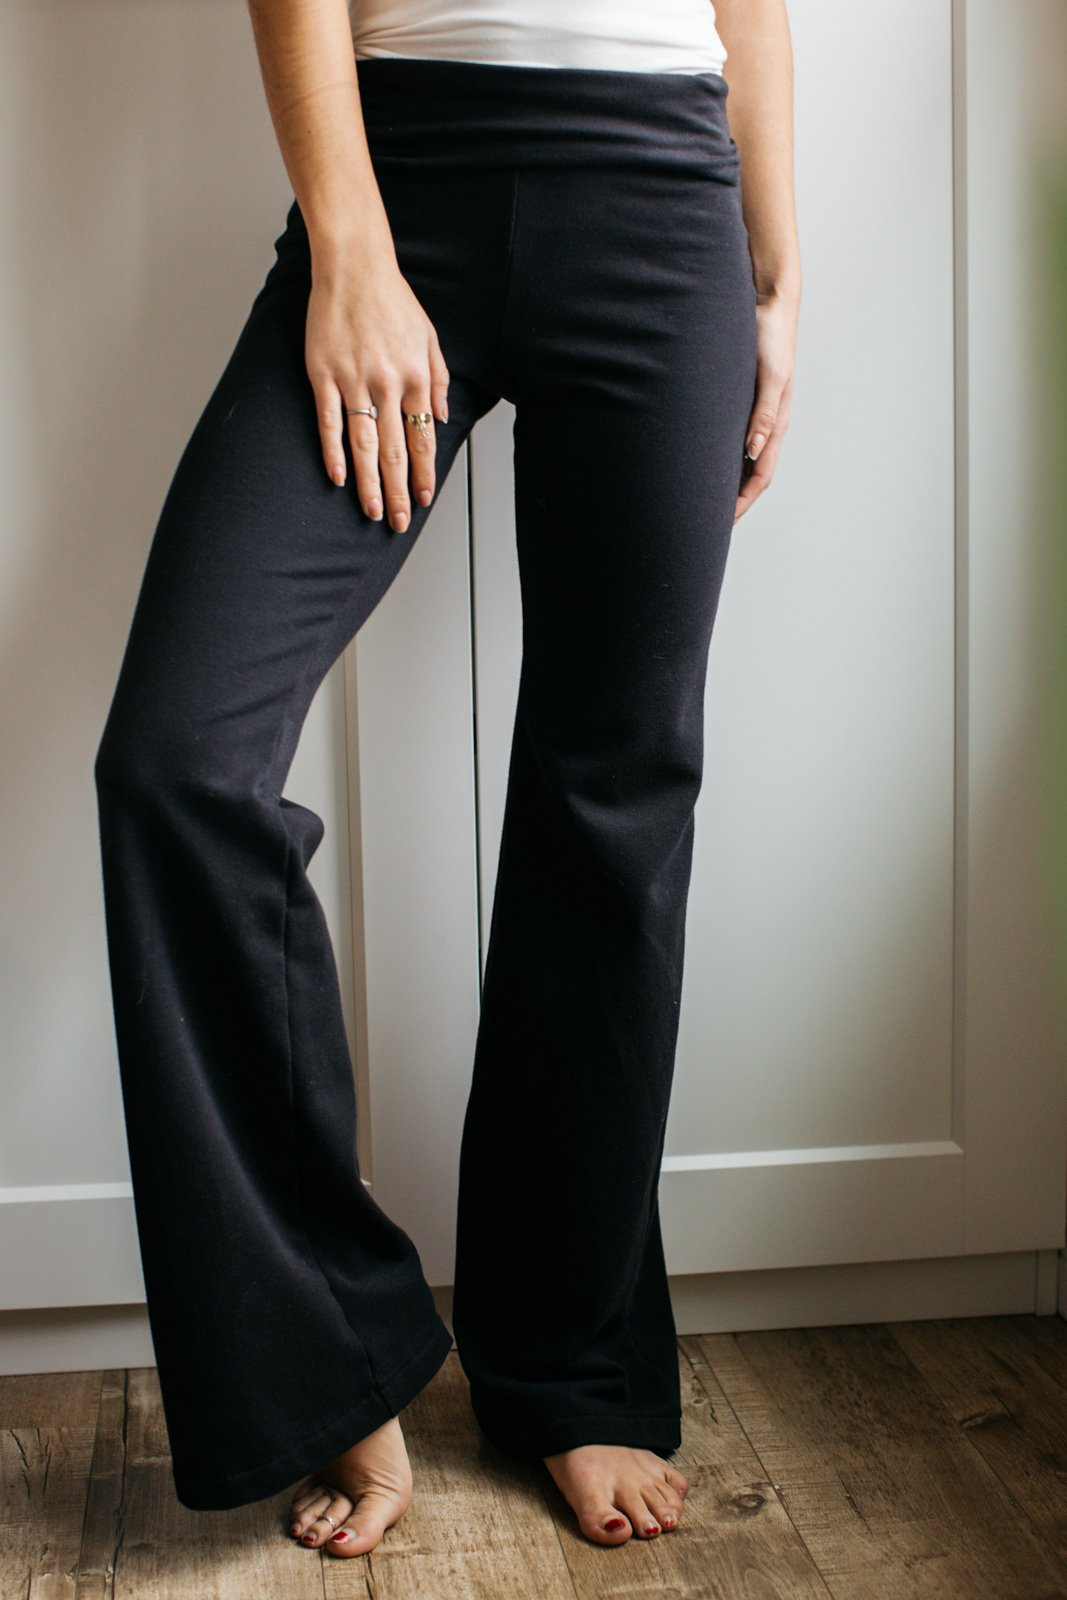 French Terry Roll Down Pant / Long Length / Black